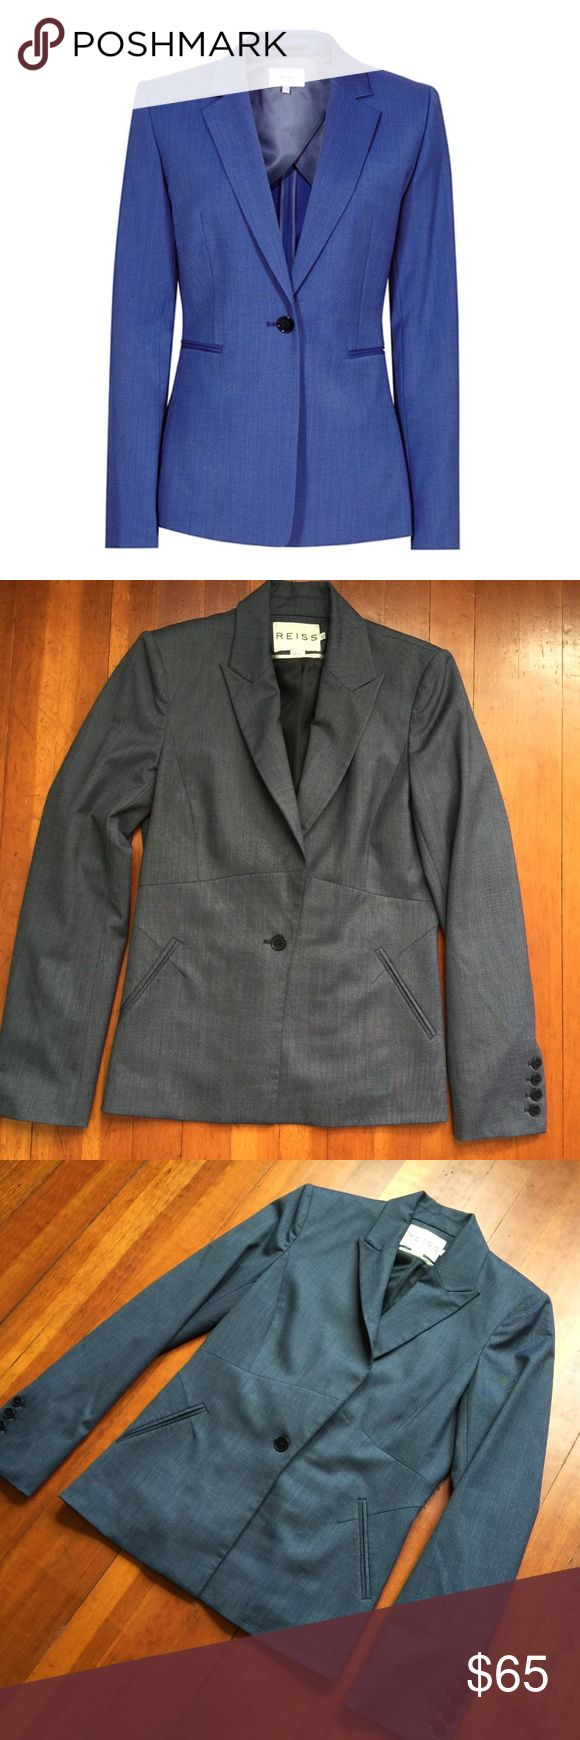 NEW - REISS - Gray / Blue Taylored Blazer Jacket REISS - Gray / Blue Button Taylored Blazer - Size 4  Color is similar to the stock photo (slightly different style blazer) it is a blueish gray, beautiful in person. A shade more gray than blue.  NEW Condition!!  Retail - $445.00  Check out my other listings!! Bundles welcome!! Thank you!!  Reiss Jackets & Coats Blazers